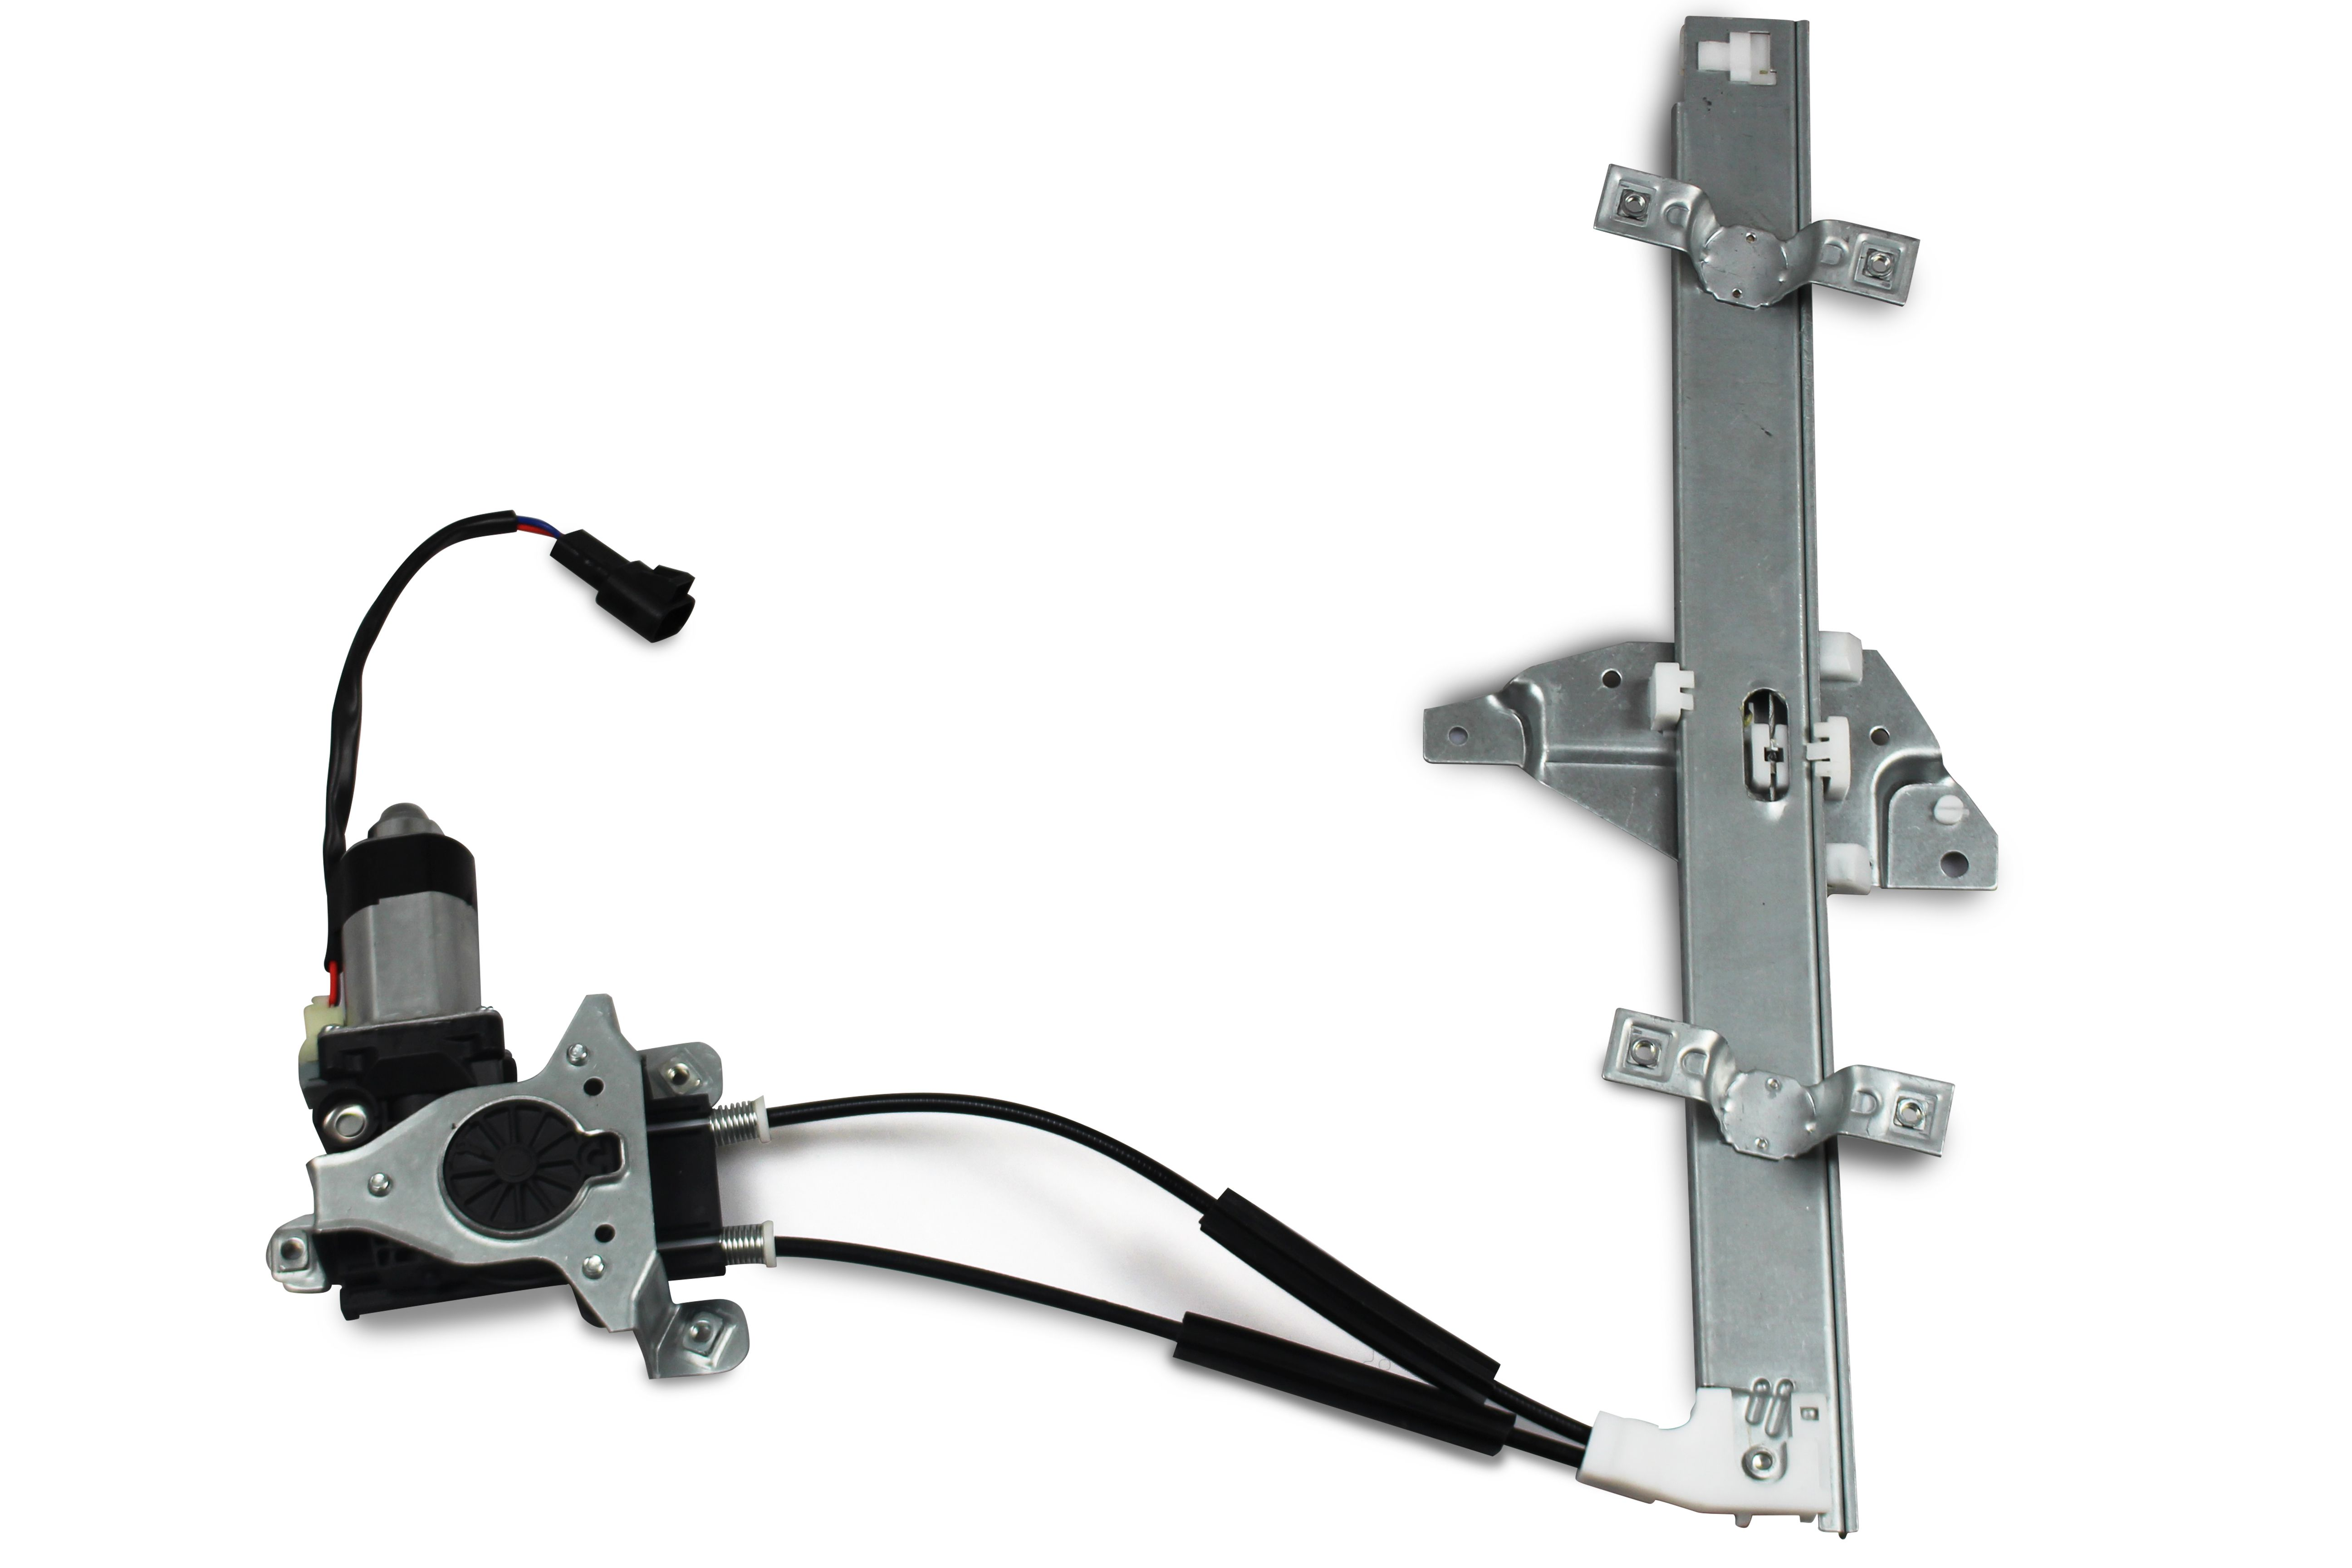 Window Regulator without Motor for 1997-2005 Buick Century Front Driver Side